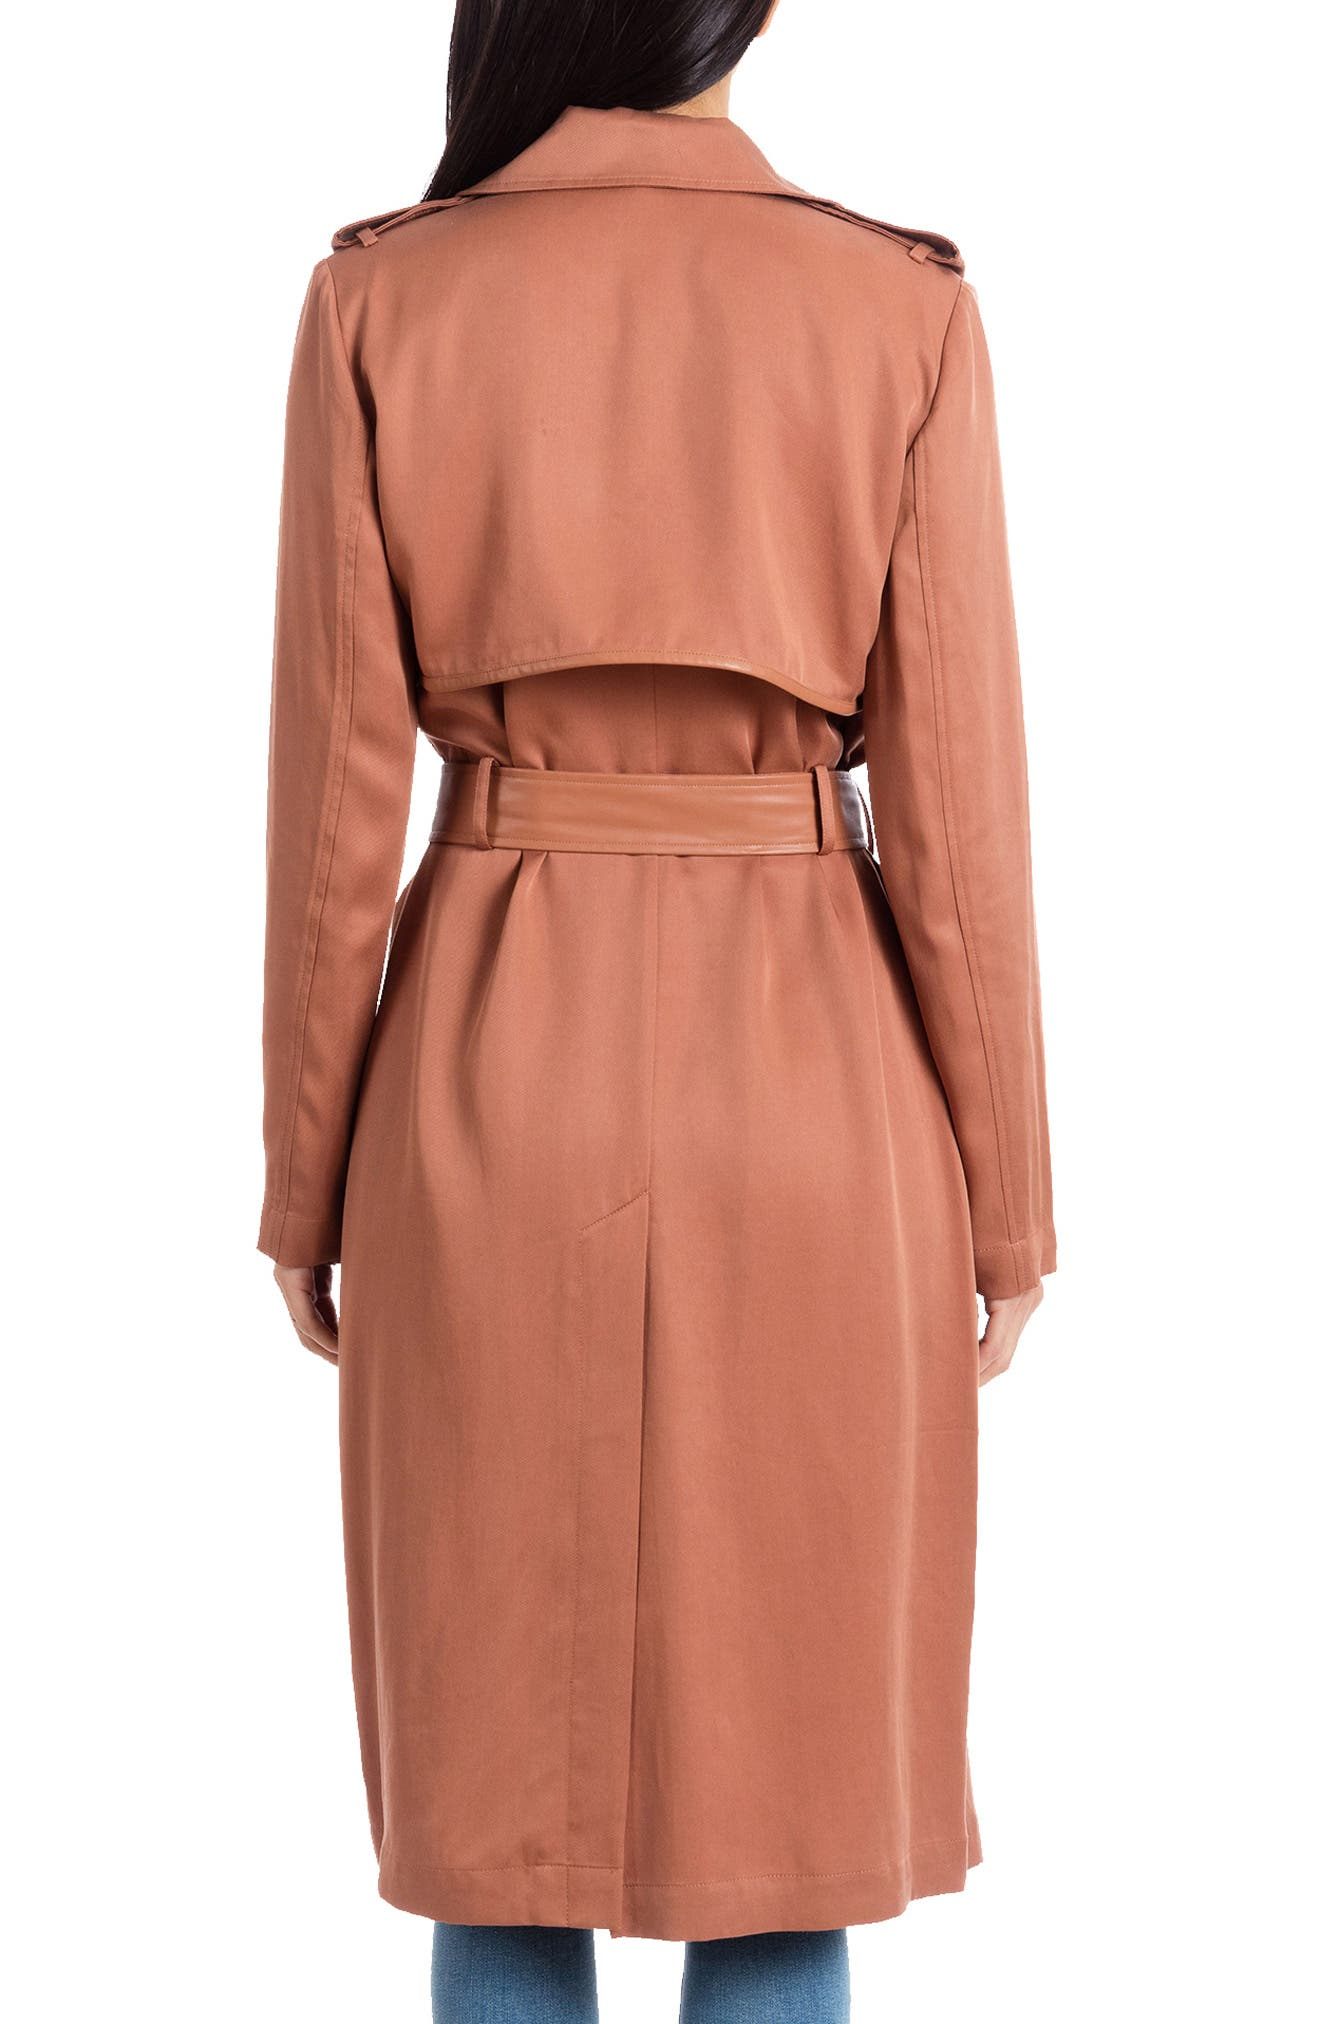 BADGLEY MISCHKA COLLECTION, Badgley Mischka Faux Leather Trim Long Trench Coat, Alternate thumbnail 2, color, CEDAR